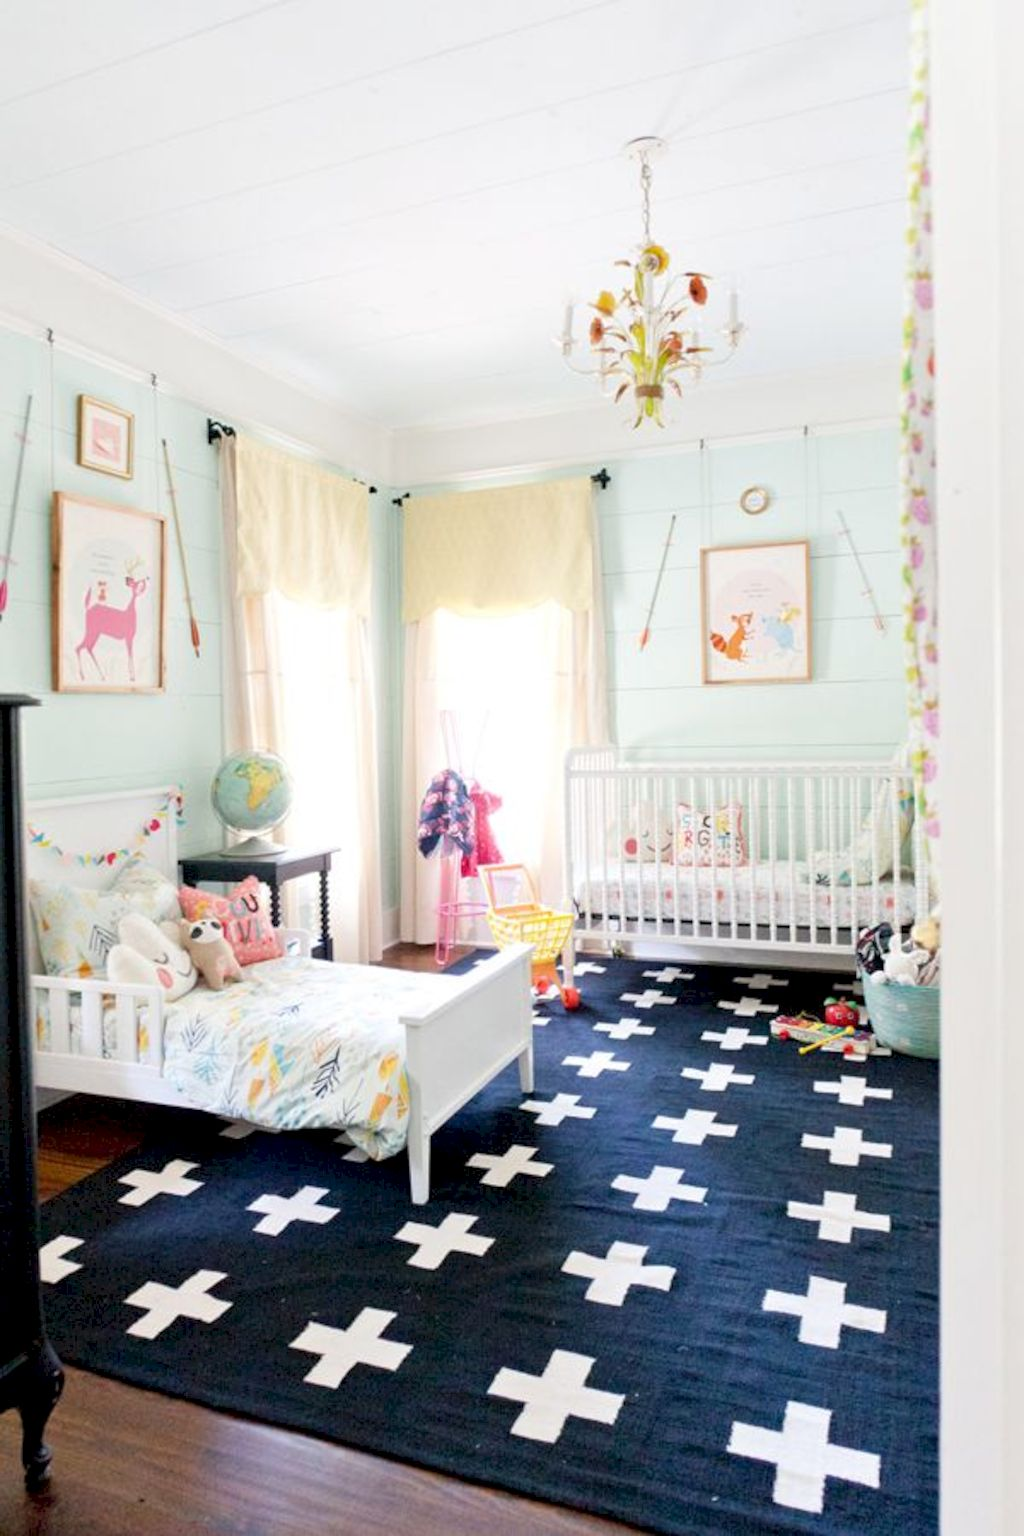 Shabby chic childrens rooms and nurseries with simple and beautiful decorations Image 23